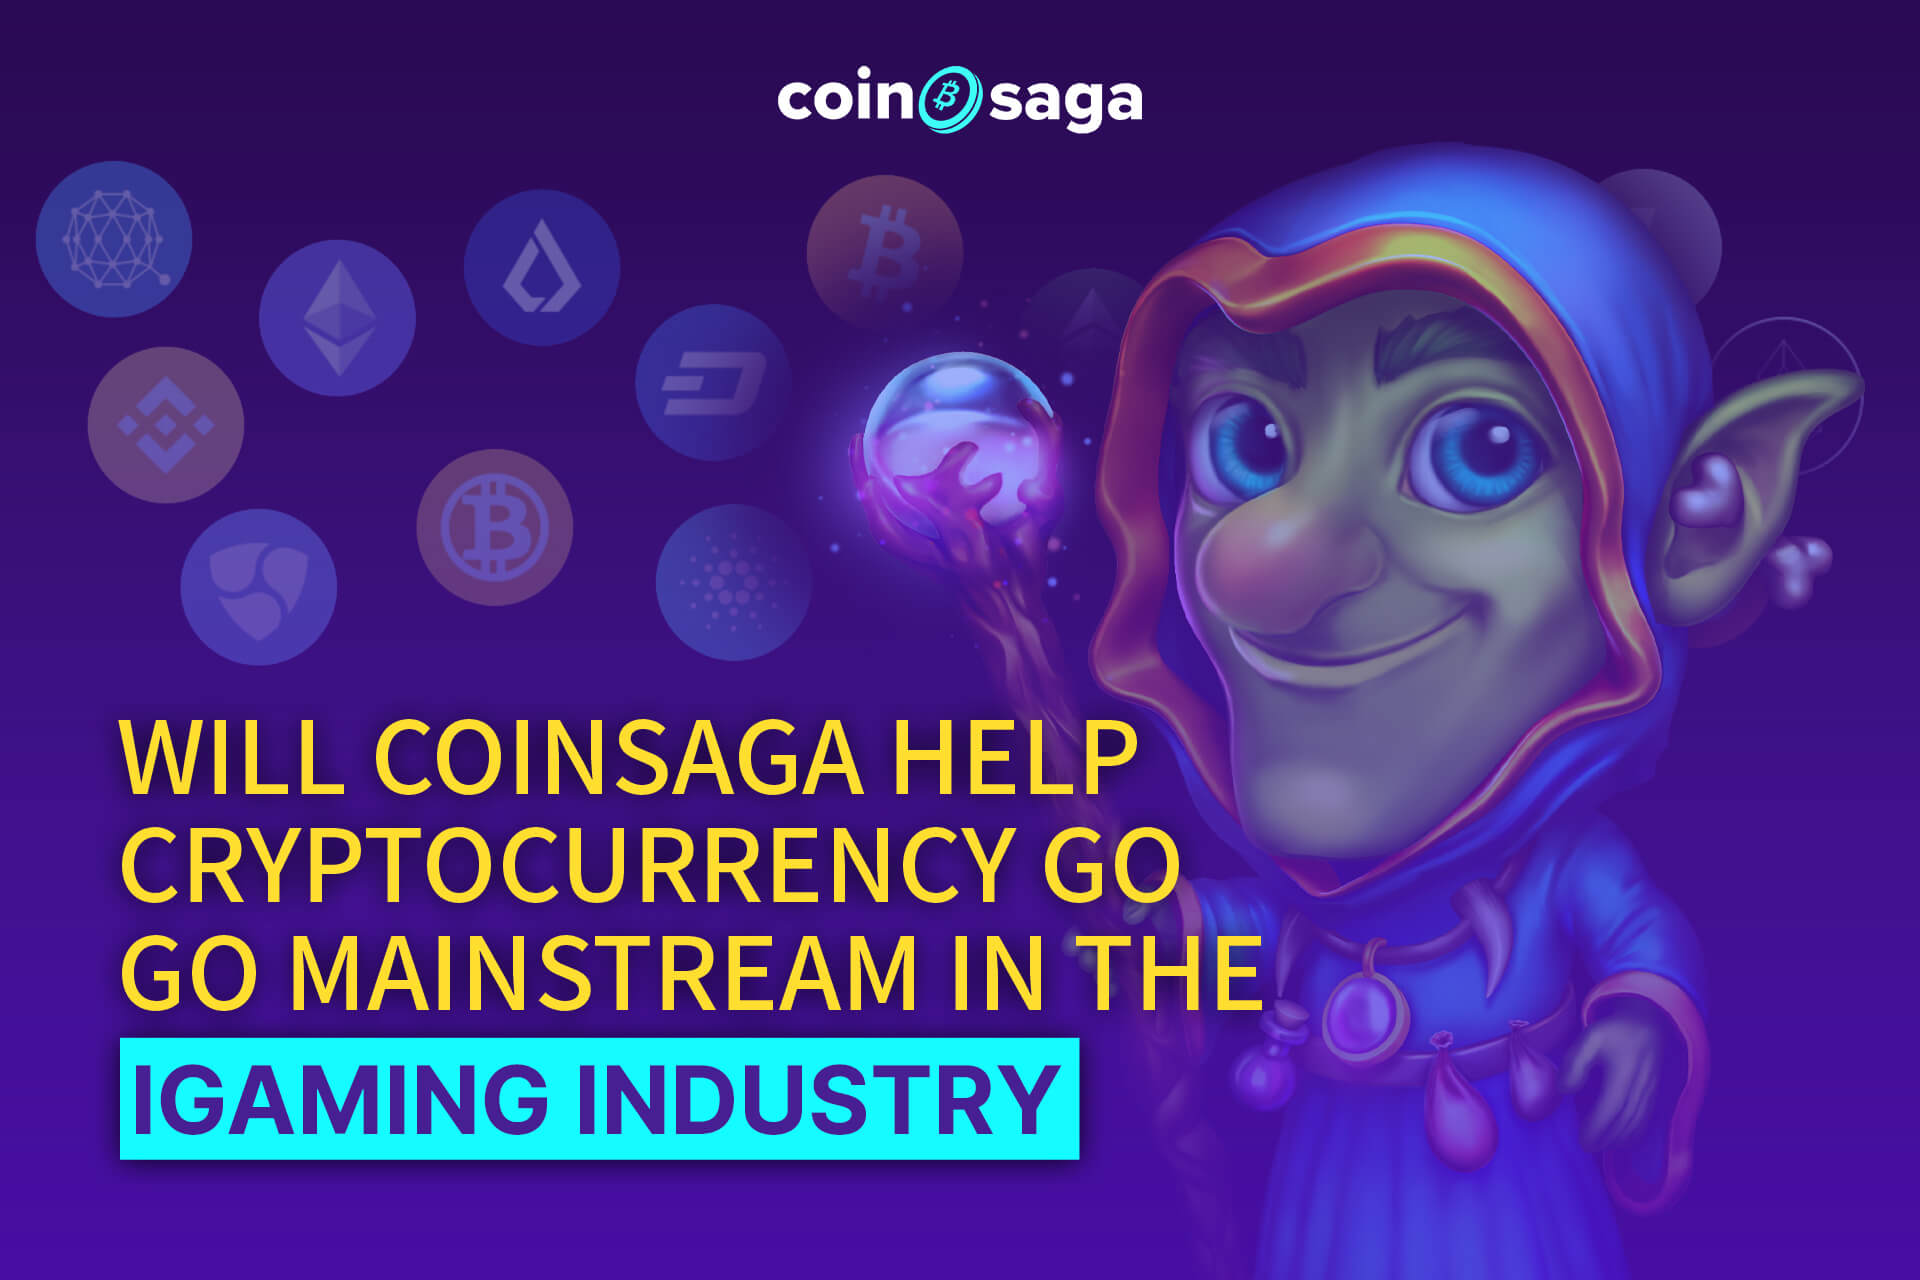 cryptocurrency igaming industry